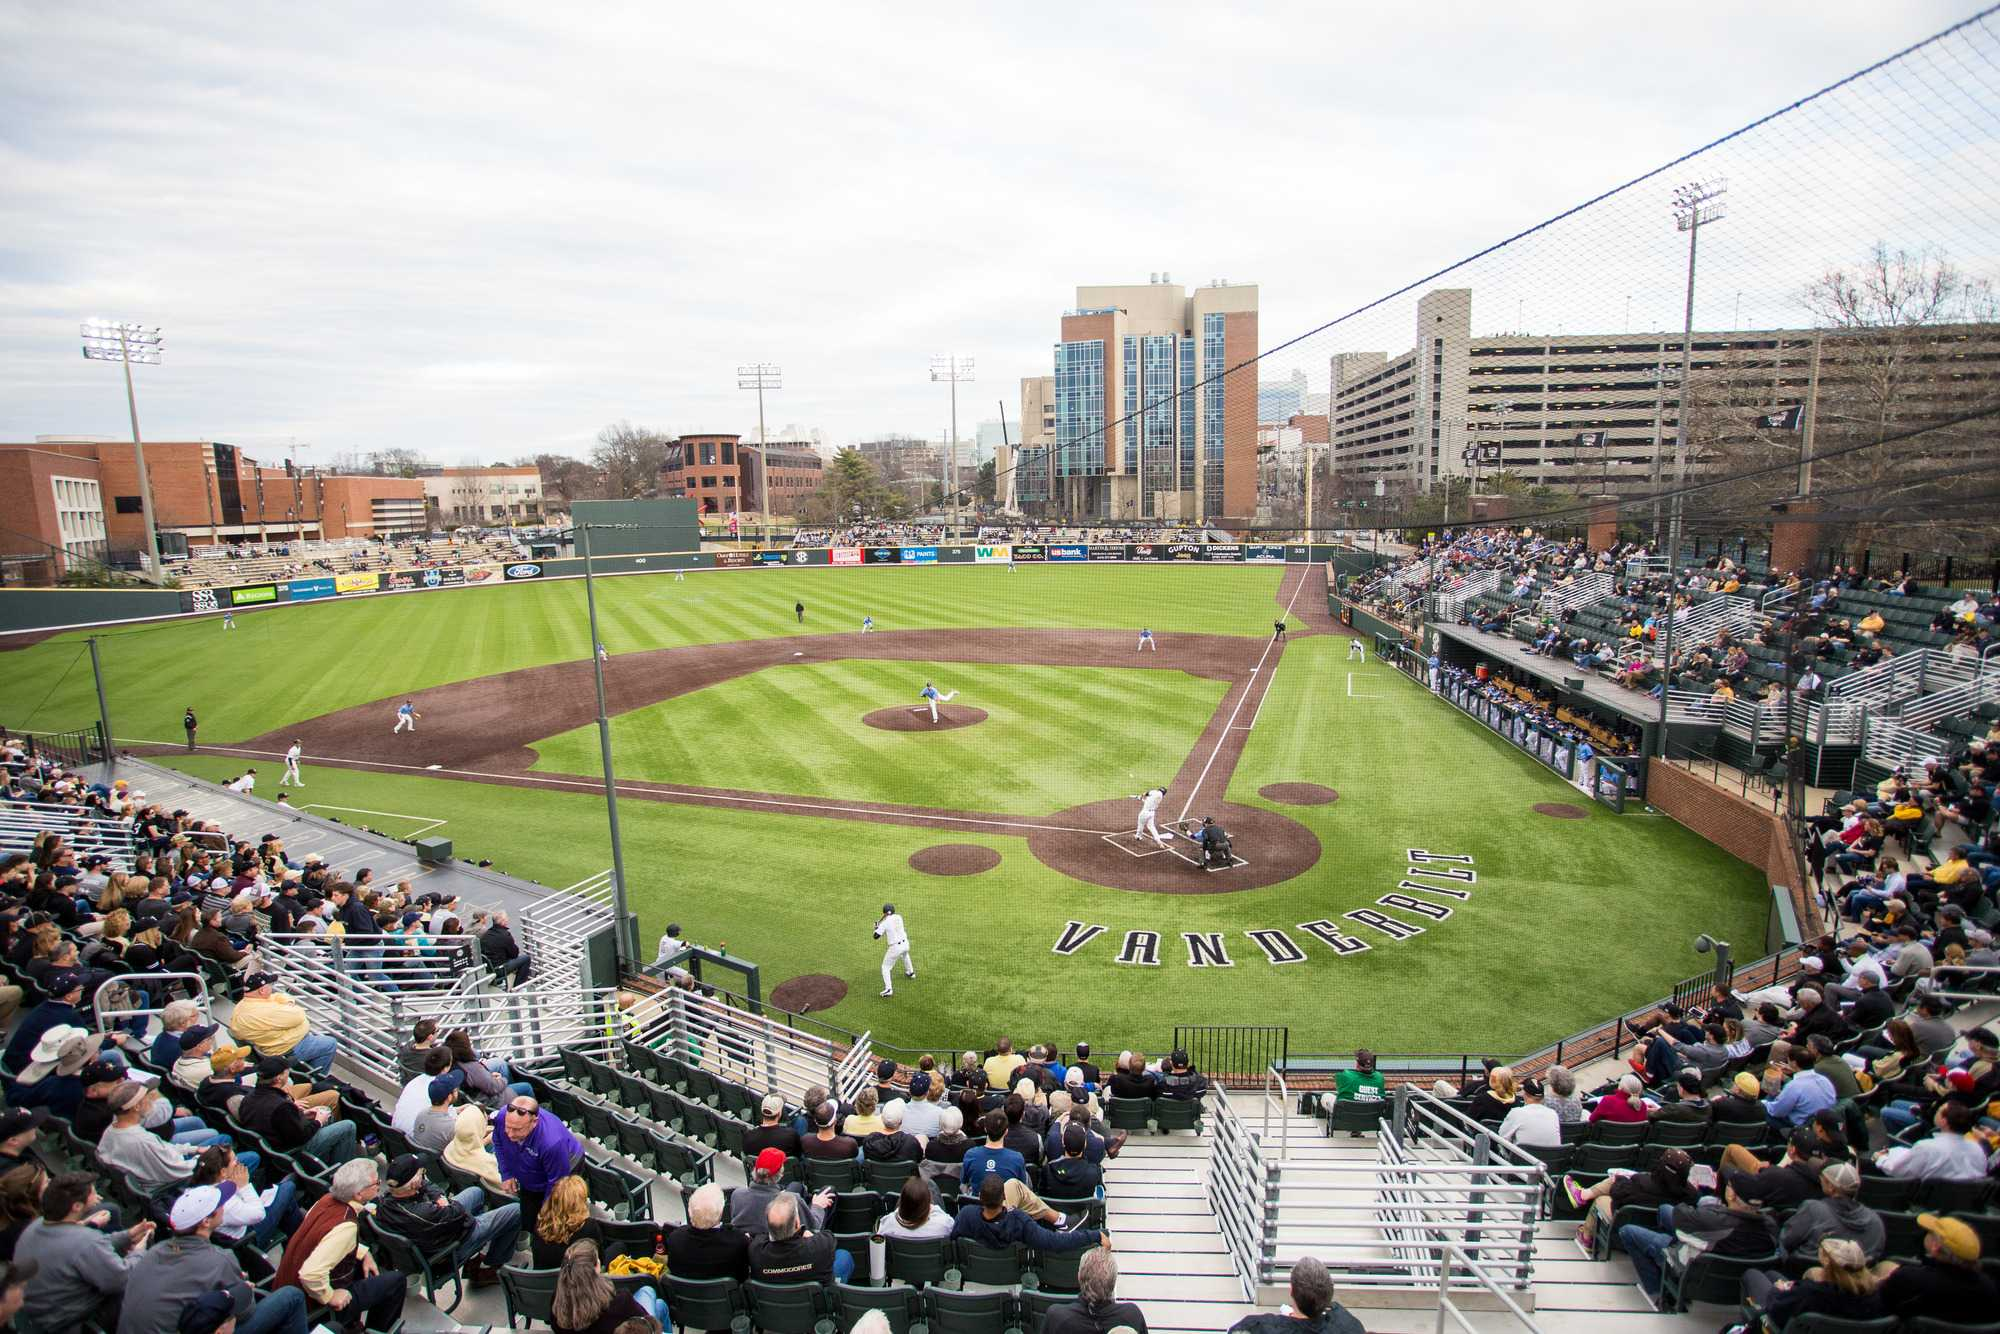 February 19, 2016: Vanderbilt's first baseball game of the season results in an 8-4 victory over San Diego at Hawkins Field.